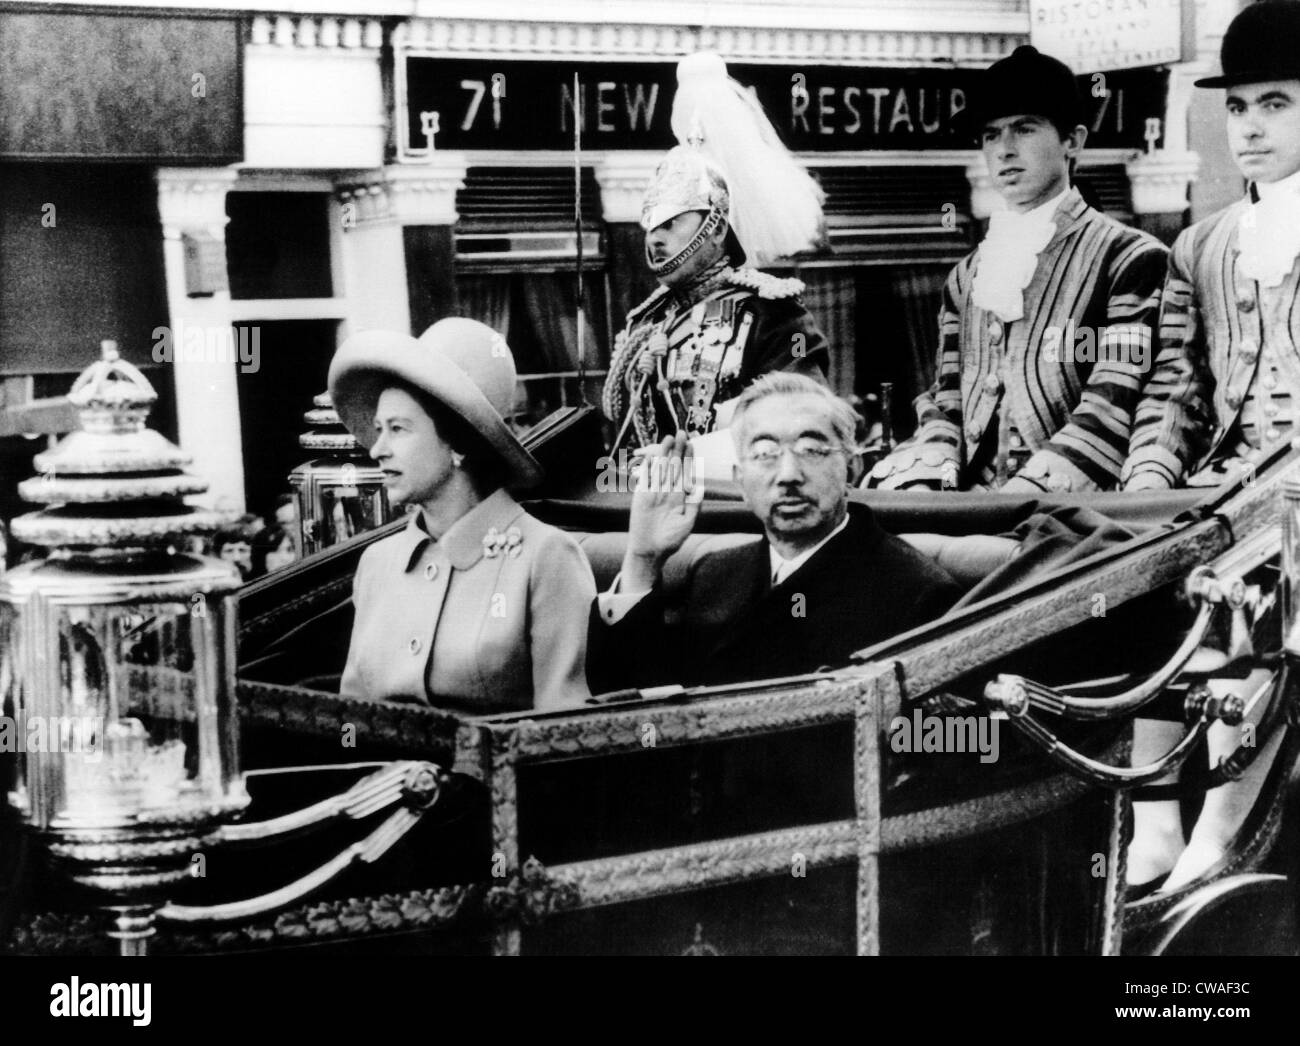 Queen Elizabeth and Emperor Hirohito, ride a carriage from Victoria Station to Buckingham Palace. London, England. - Stock Image